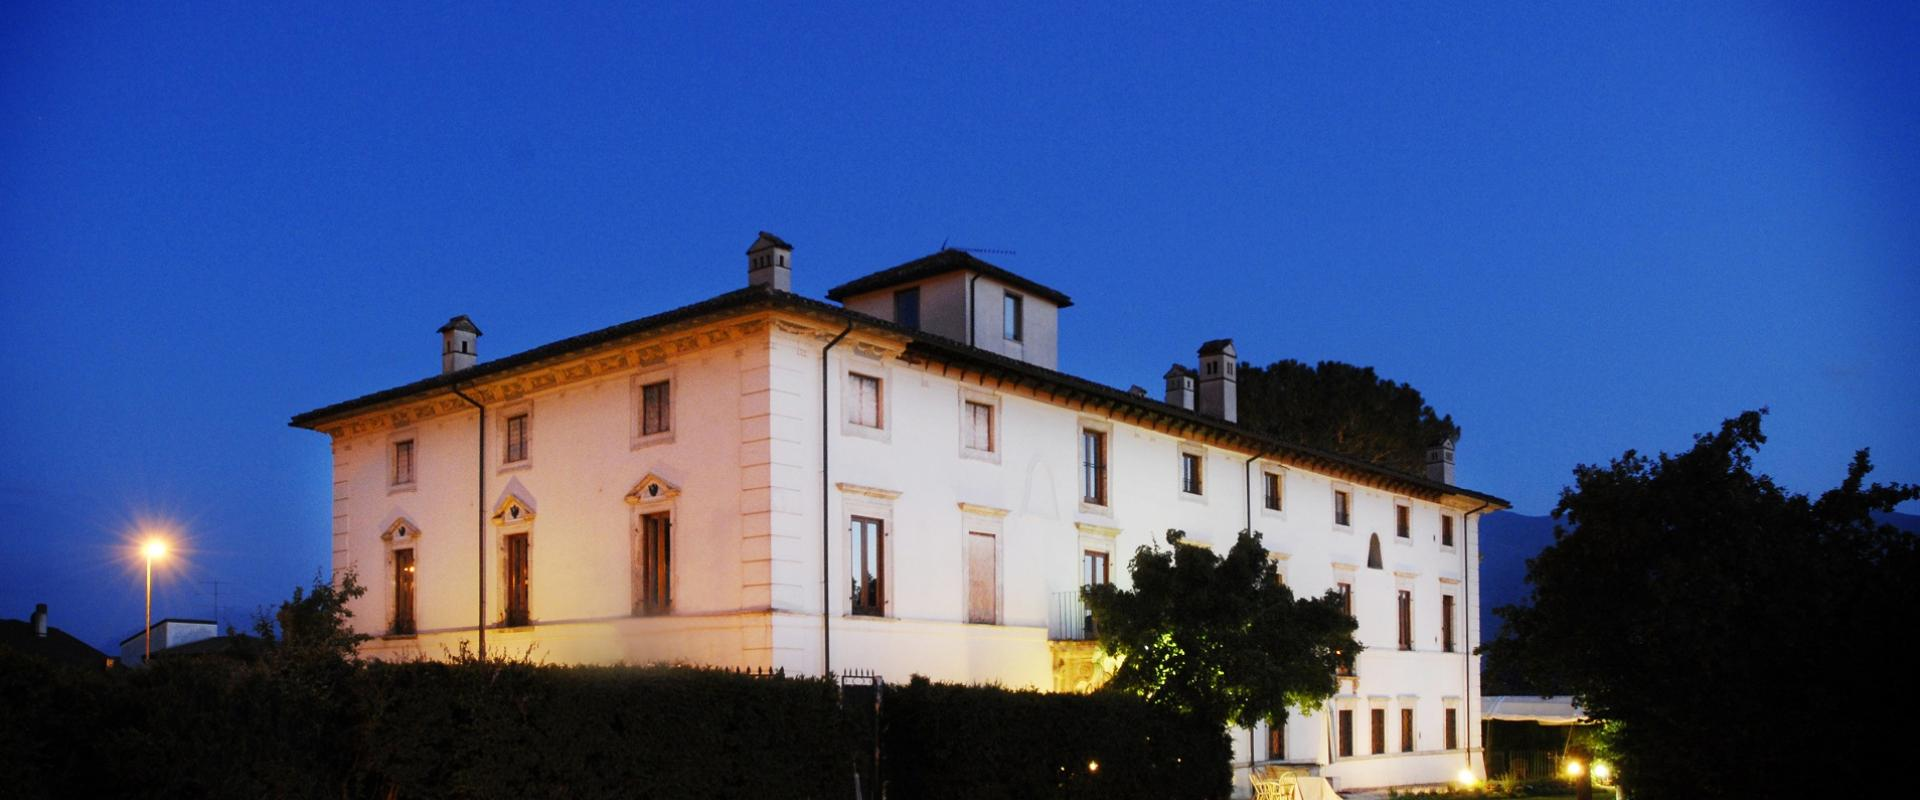 Historical Villa in L' Aquila area